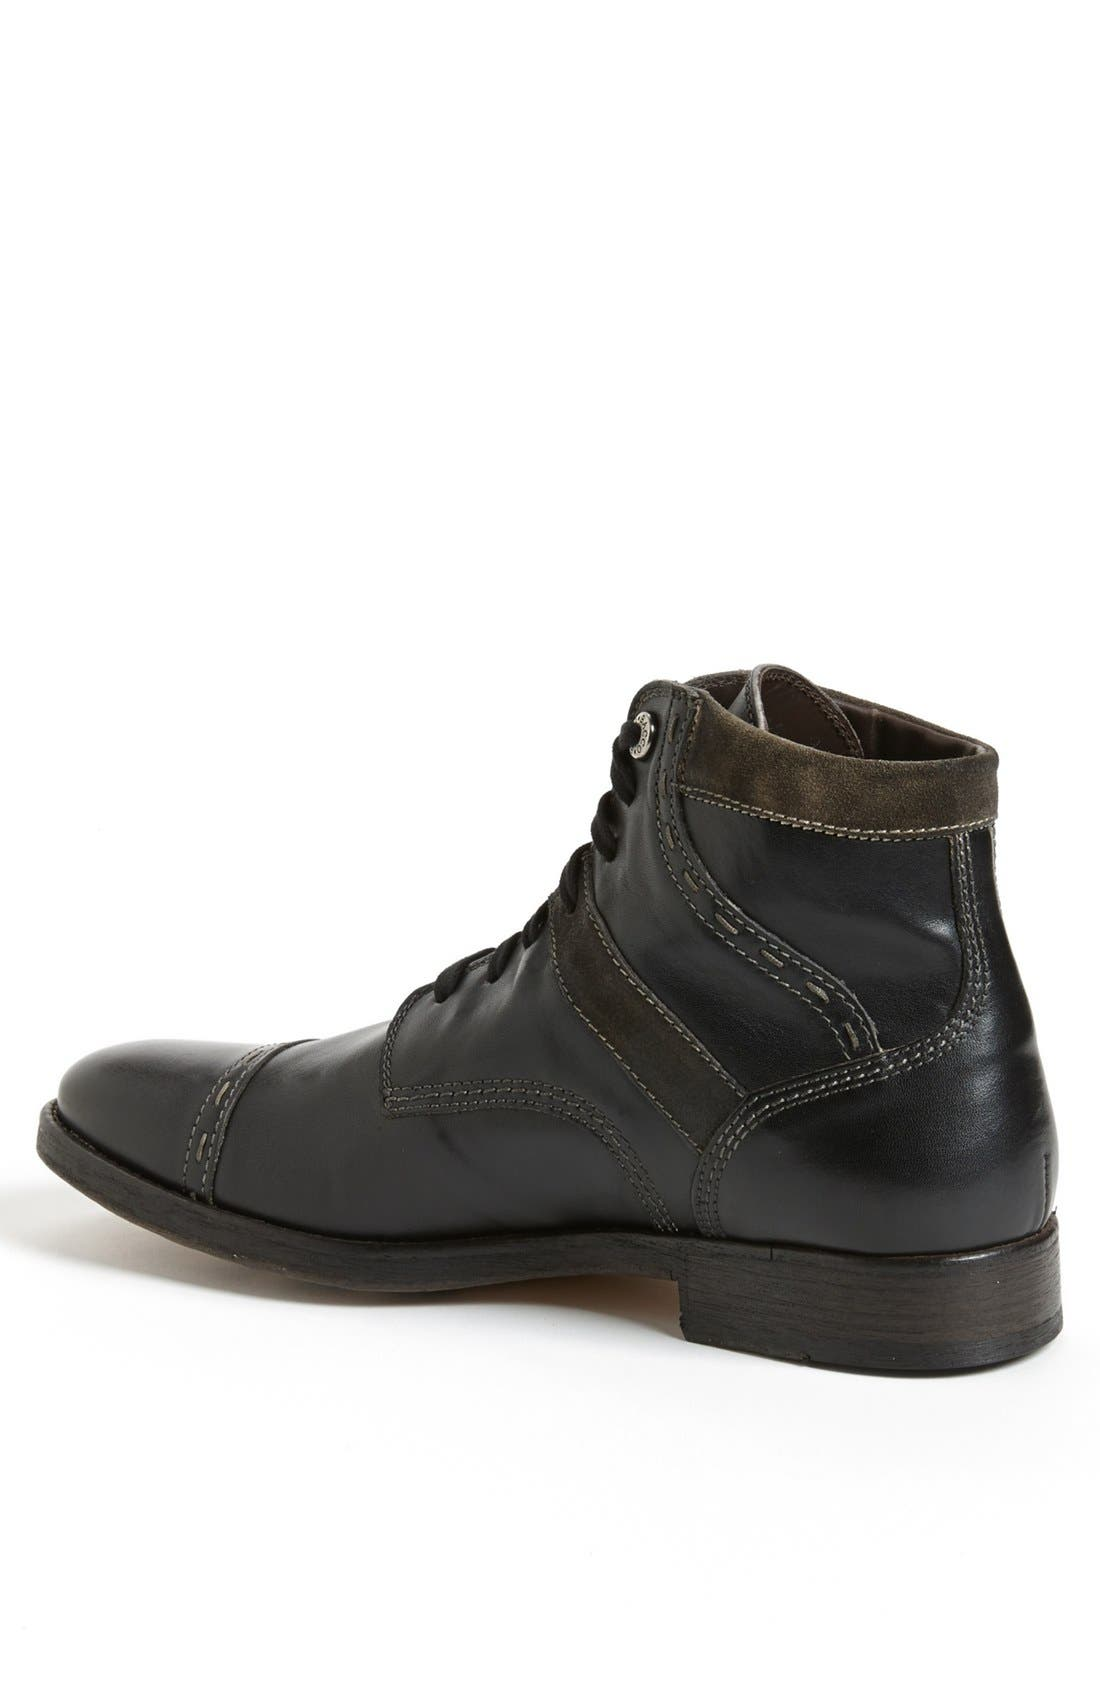 Alternate Image 2  - Bacco Bucci 'Barone' Cap Toe Boot (Men)